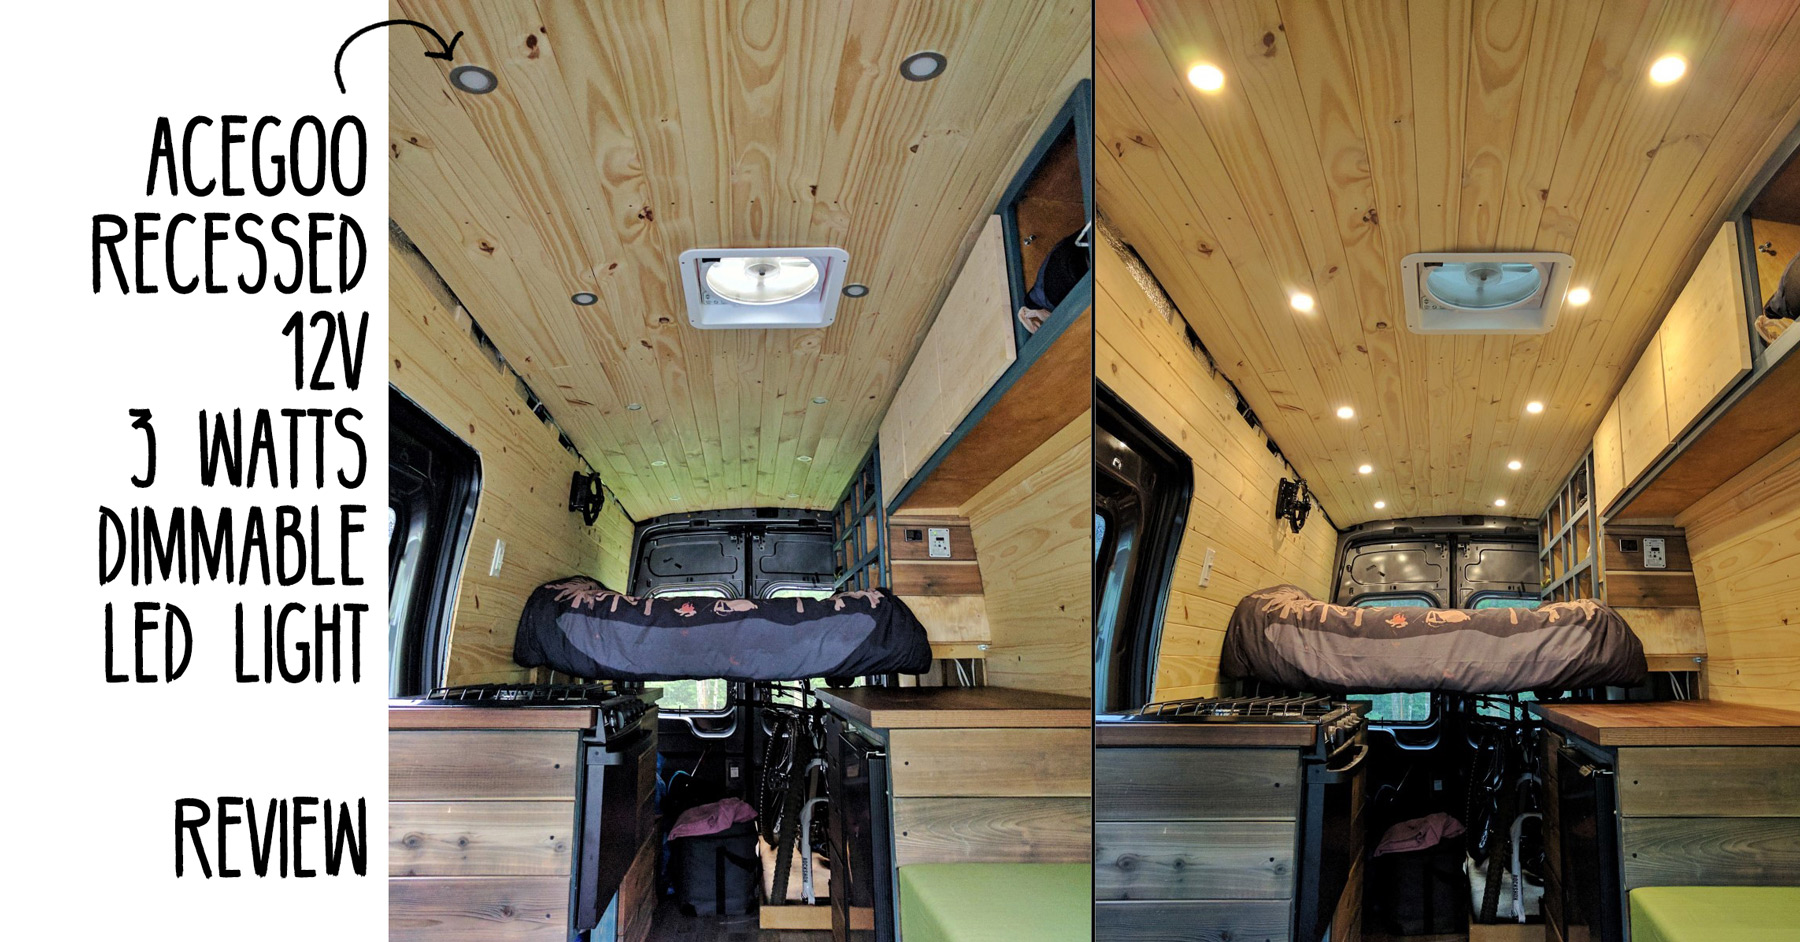 Recessed Ceiling LED Lights for Van Conversion  FarOutRide